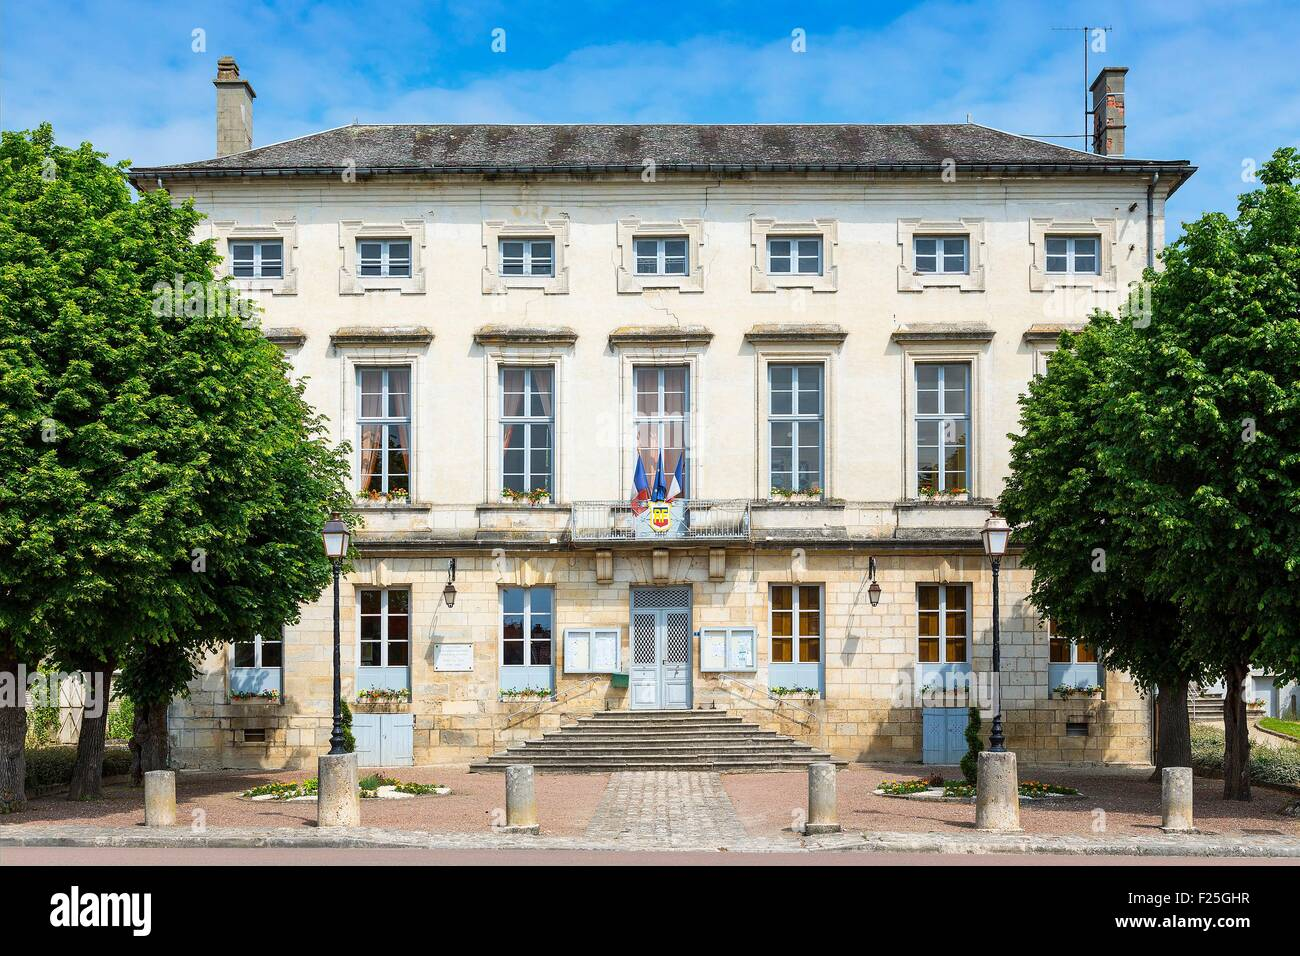 France, Aube (10), Mussy sur seine, the Town Hall - Stock Image